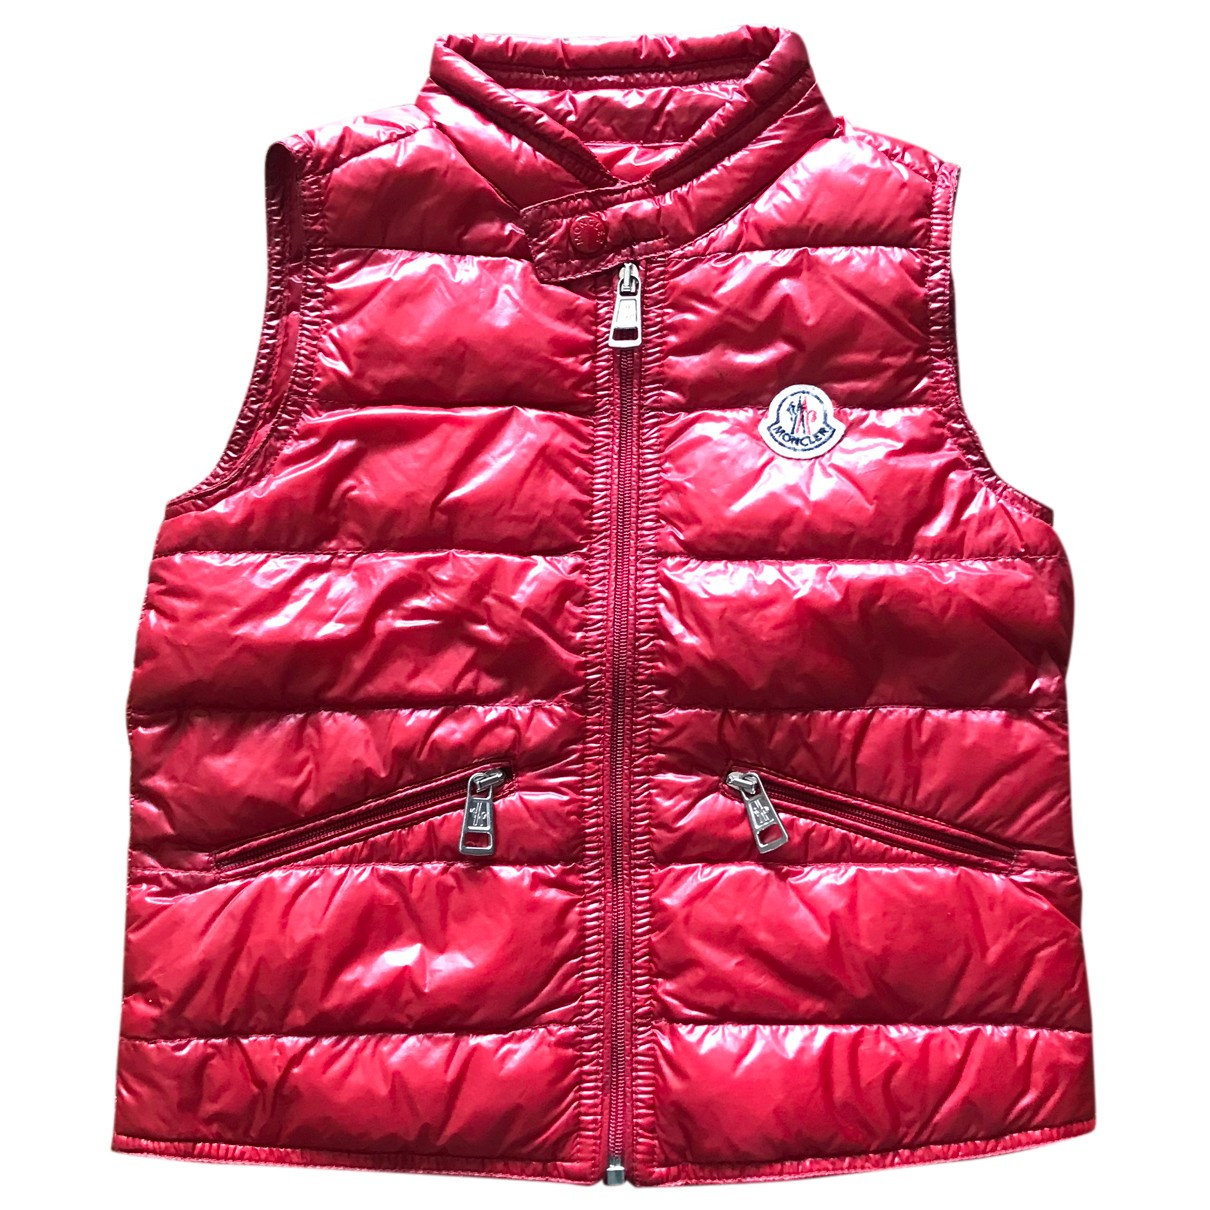 Moncler N Red Knitwear for Kids 2 years - up to 86cm FR